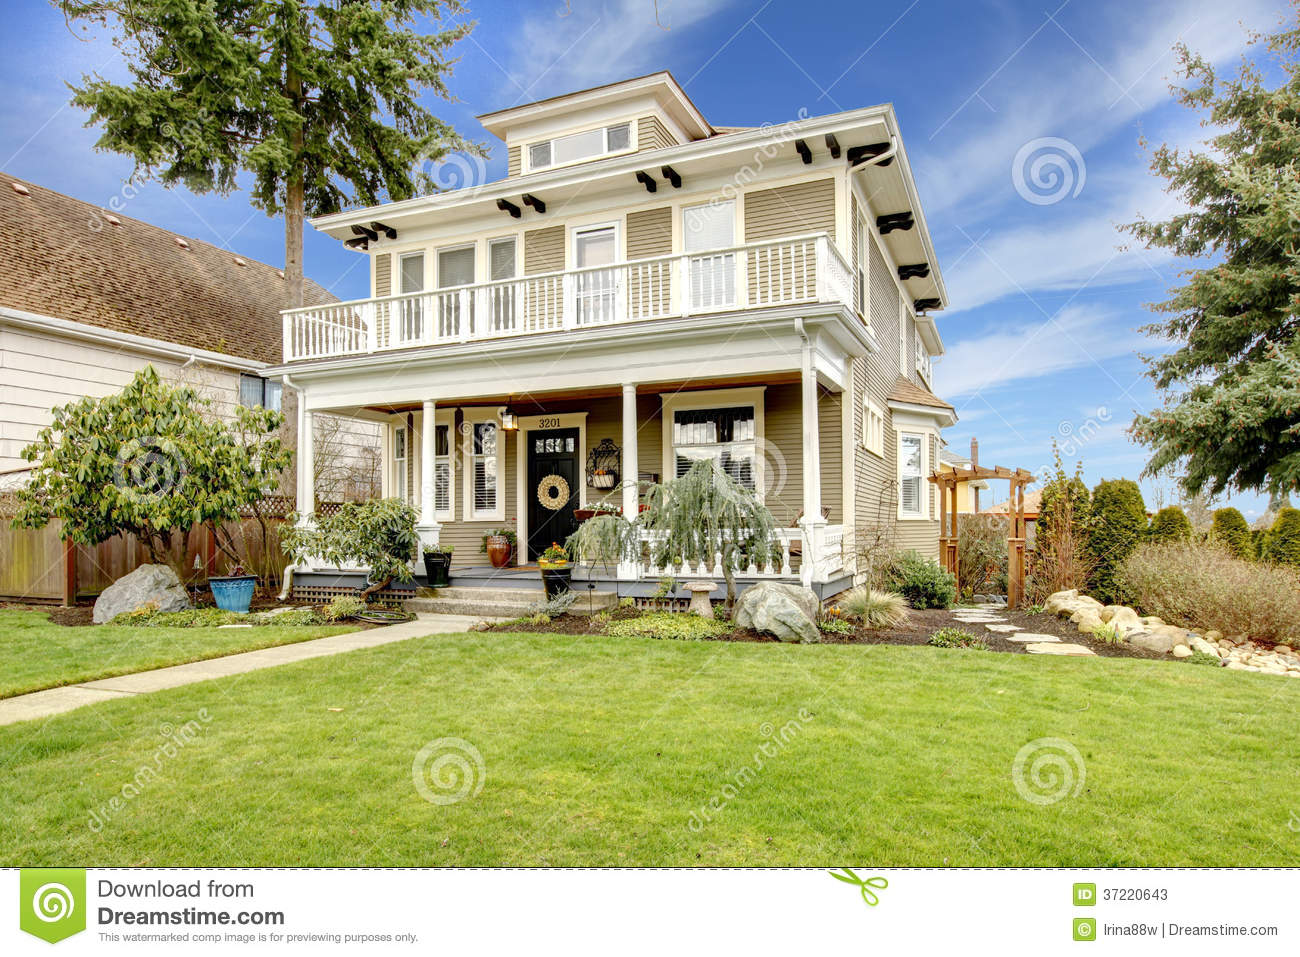 Two story american house with white column porch stock for American classic house